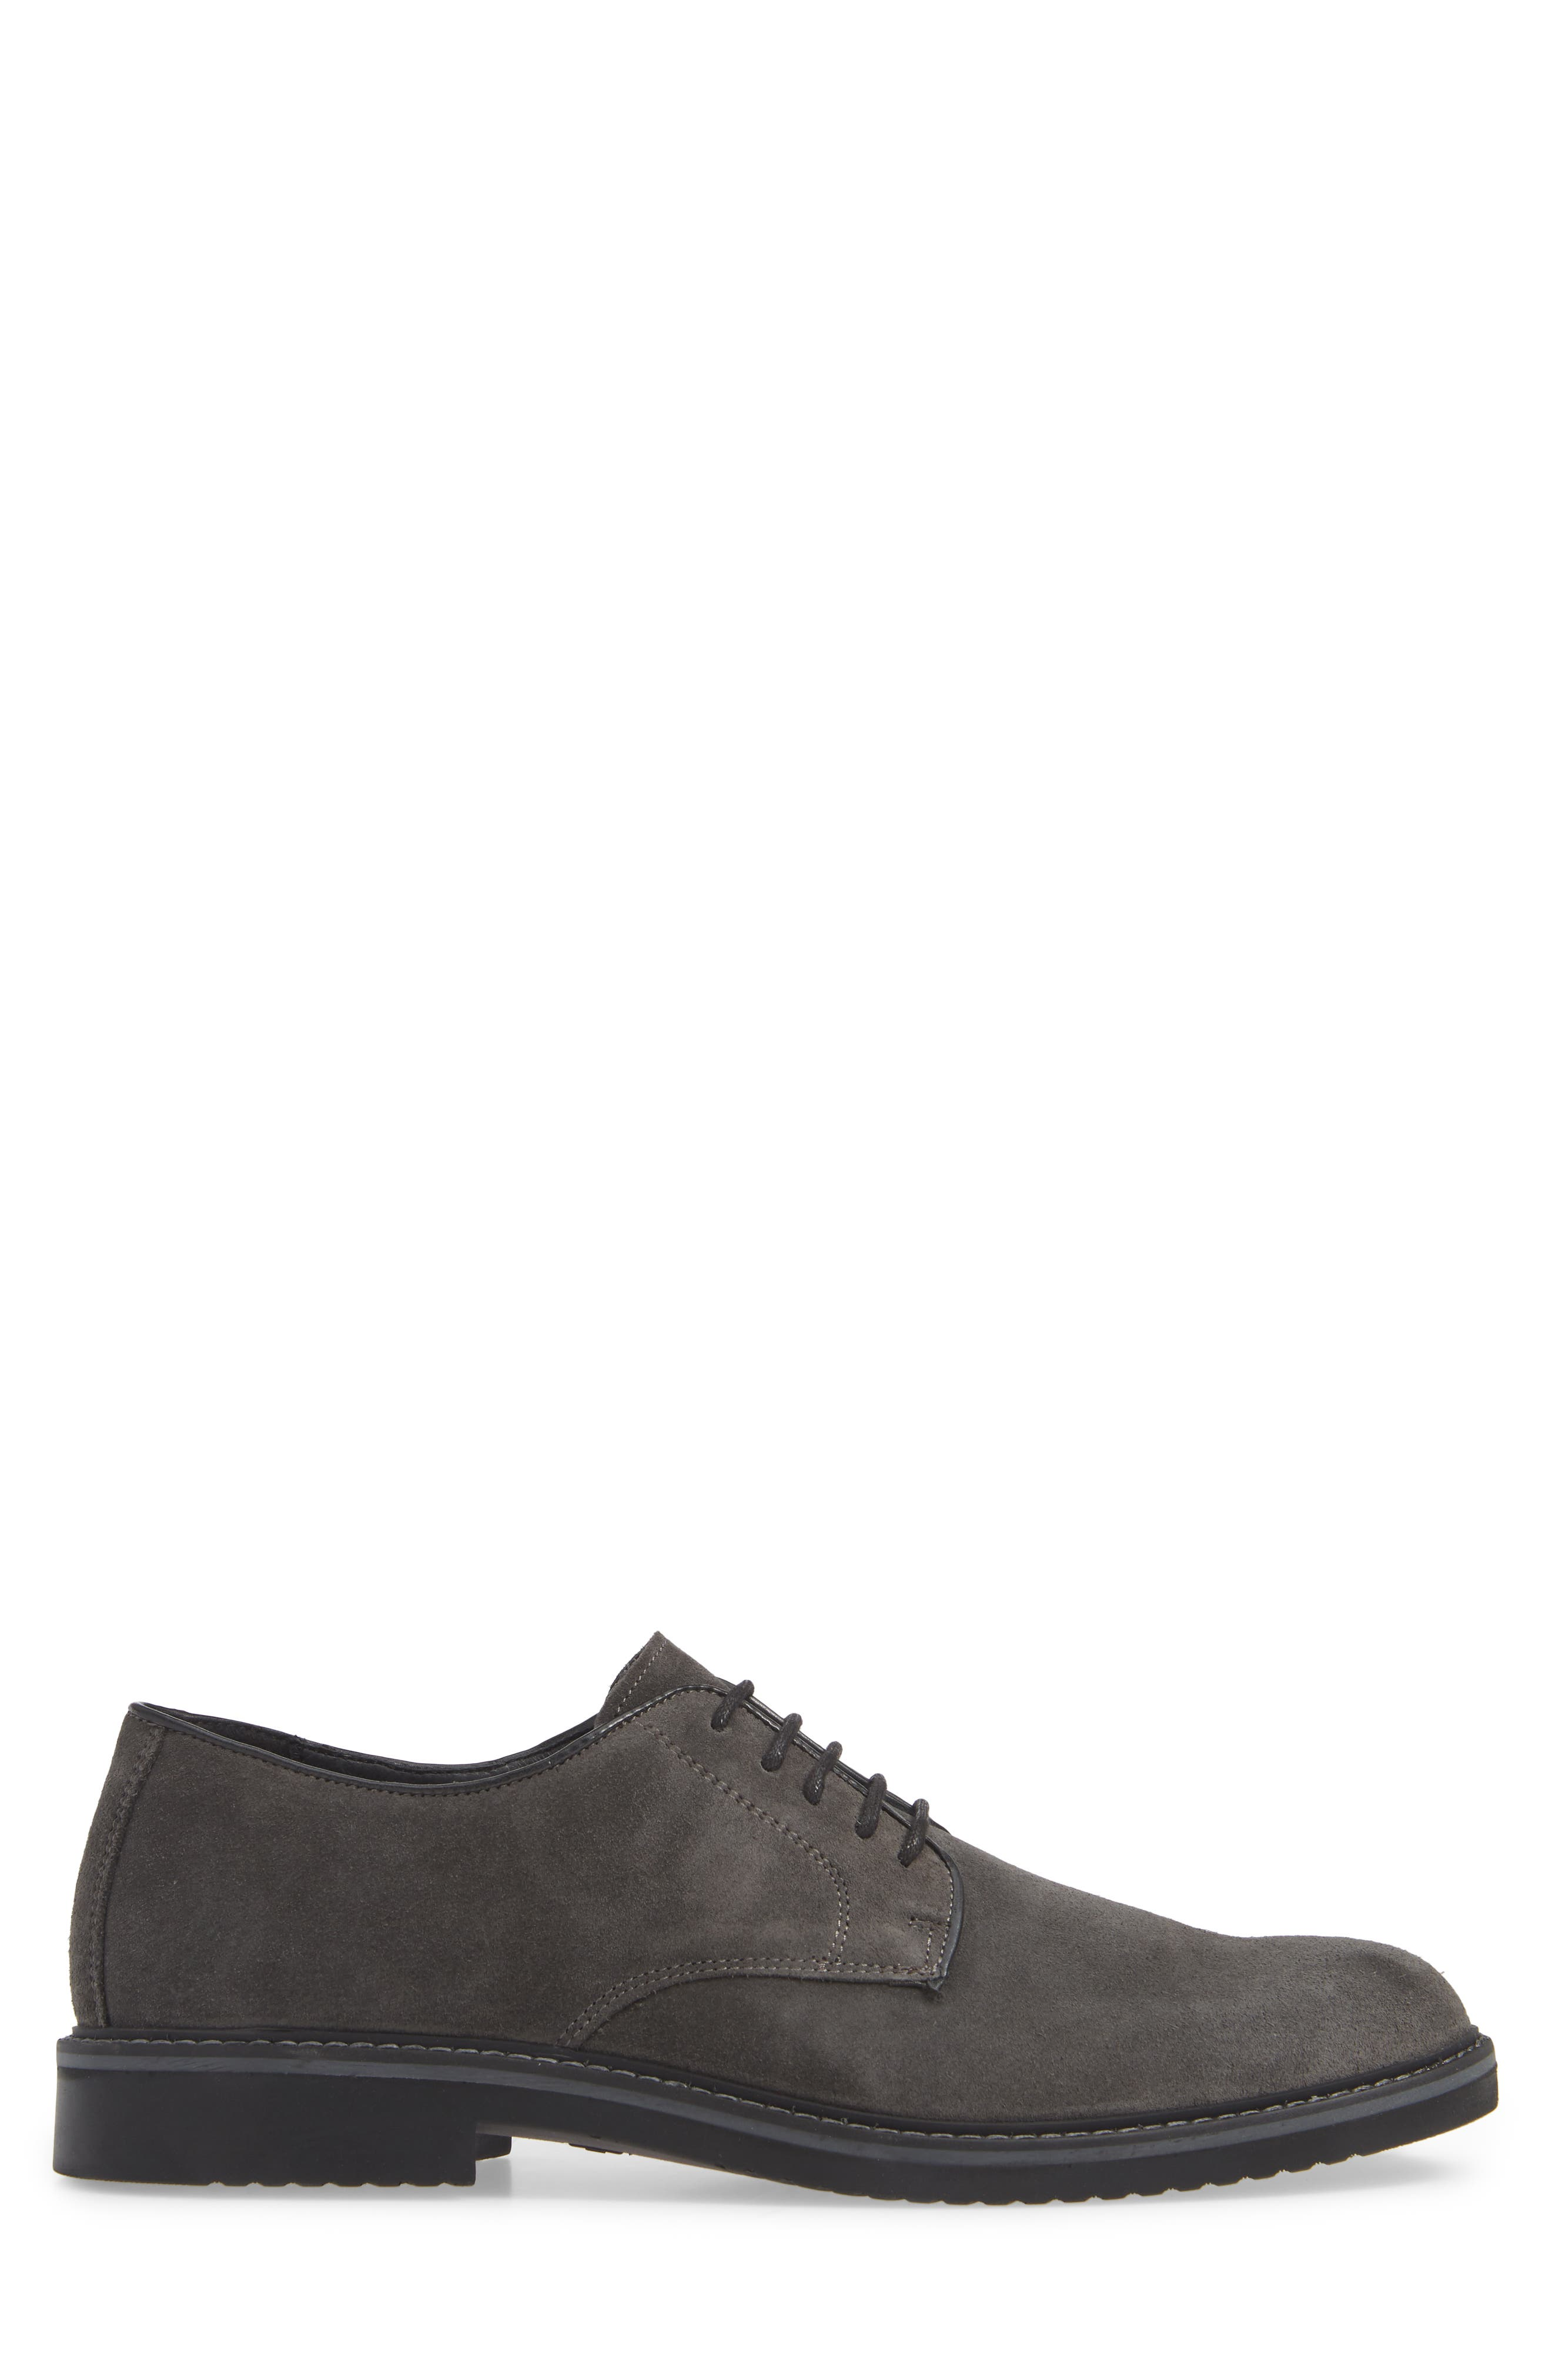 Cardiff Plain Toe Derby,                             Alternate thumbnail 3, color,                             CHARCOAL SUEDE